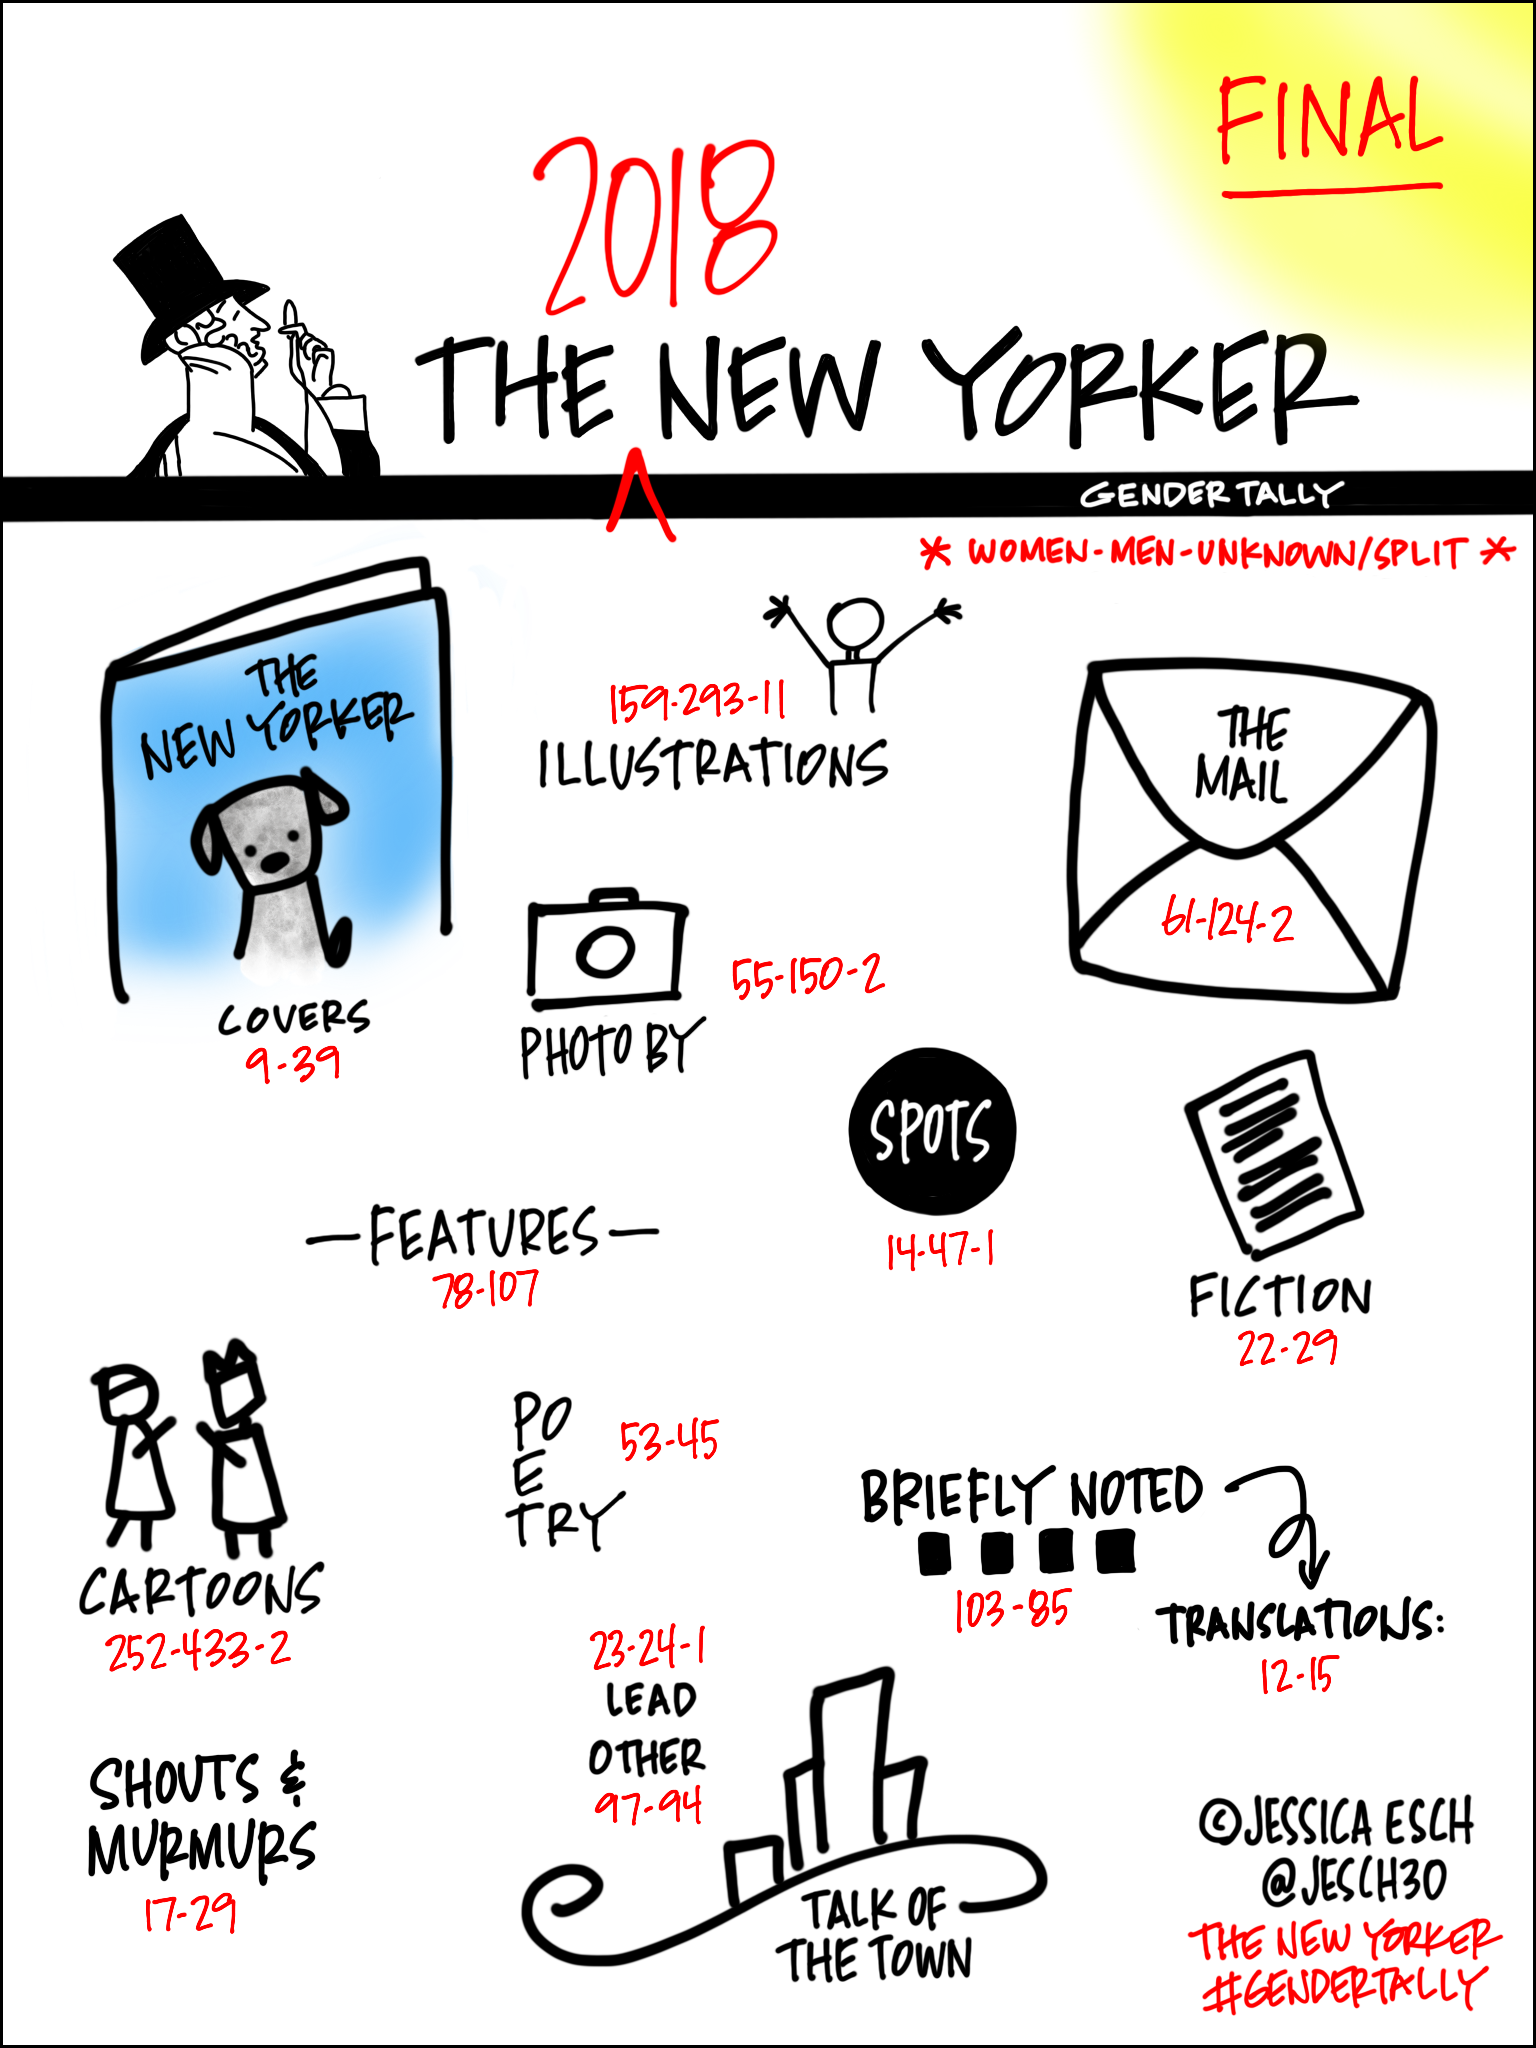 Jessica Esch's  The New Yorker  Gender Tally